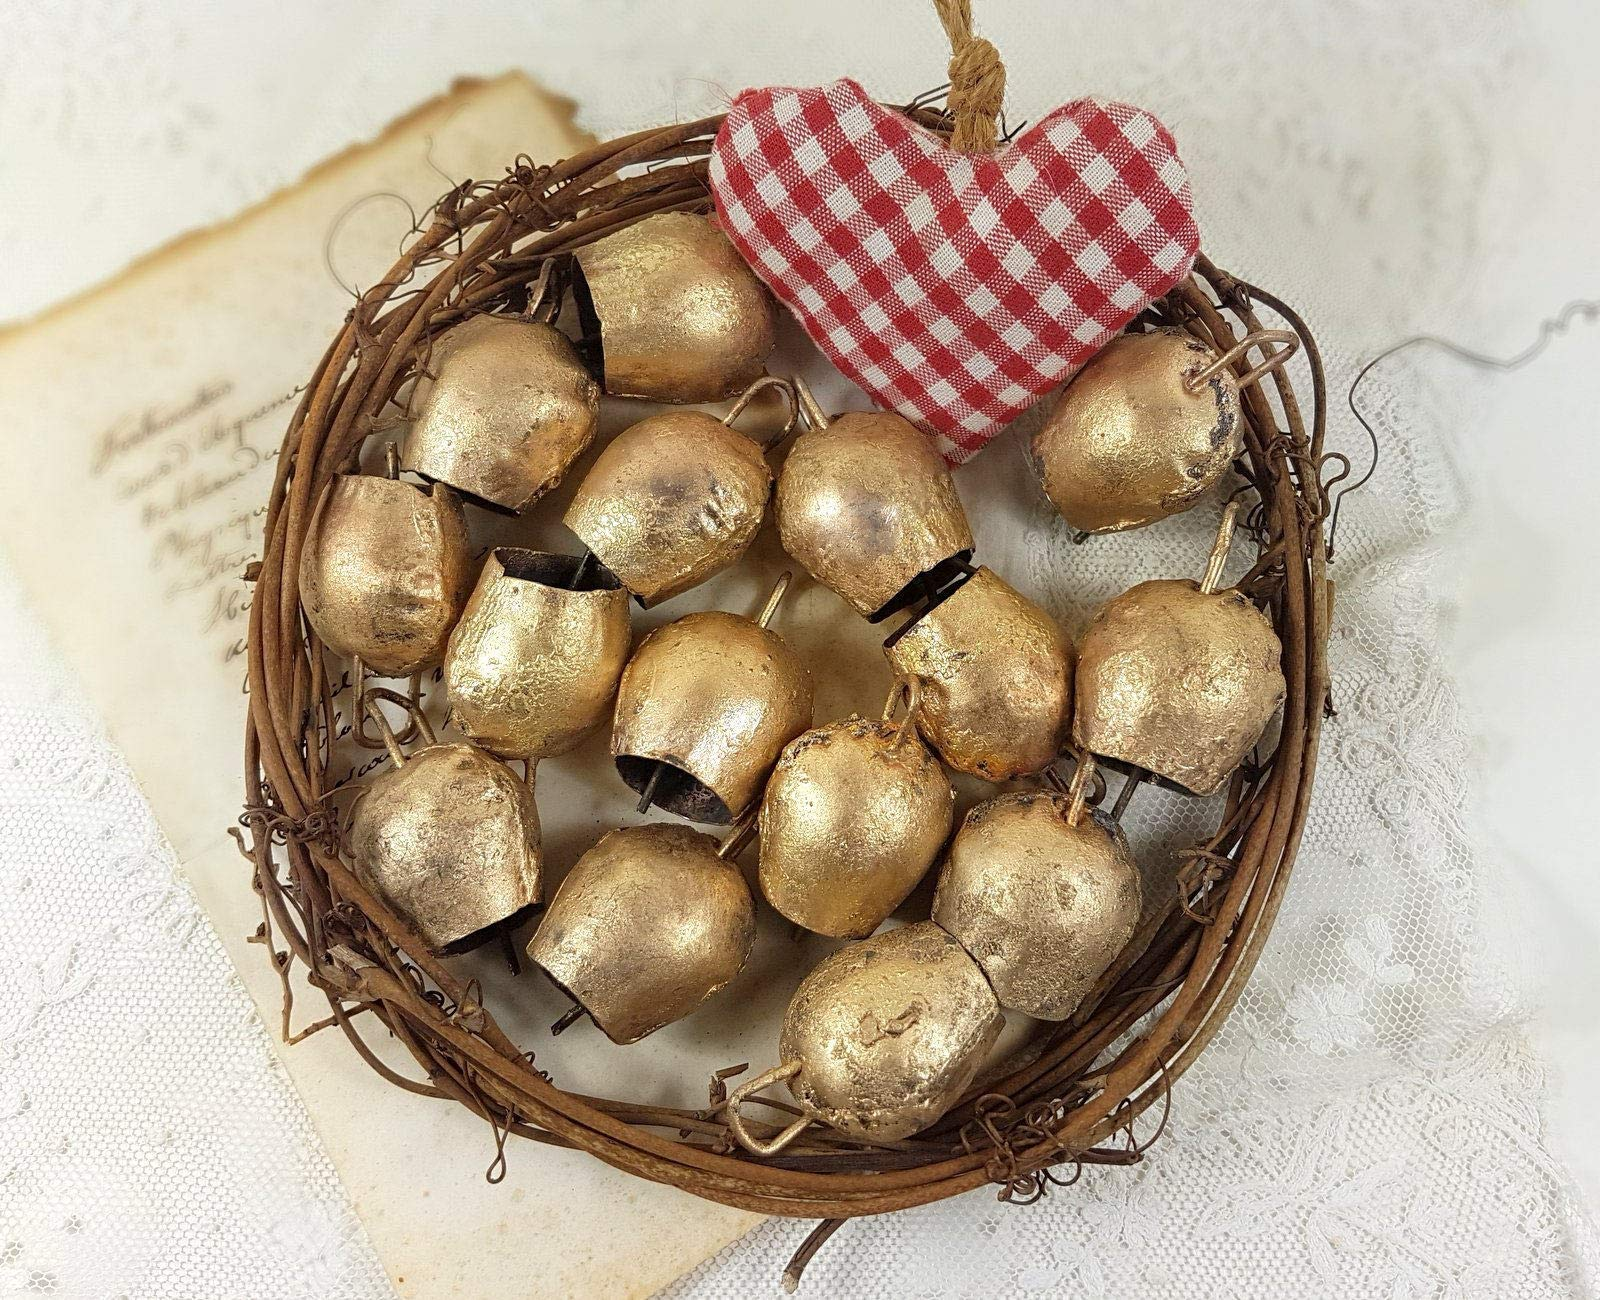 Mango Gifts 100 Pc Vintage Cow Bells with Metal Striker 2'' H by Mango Gifts